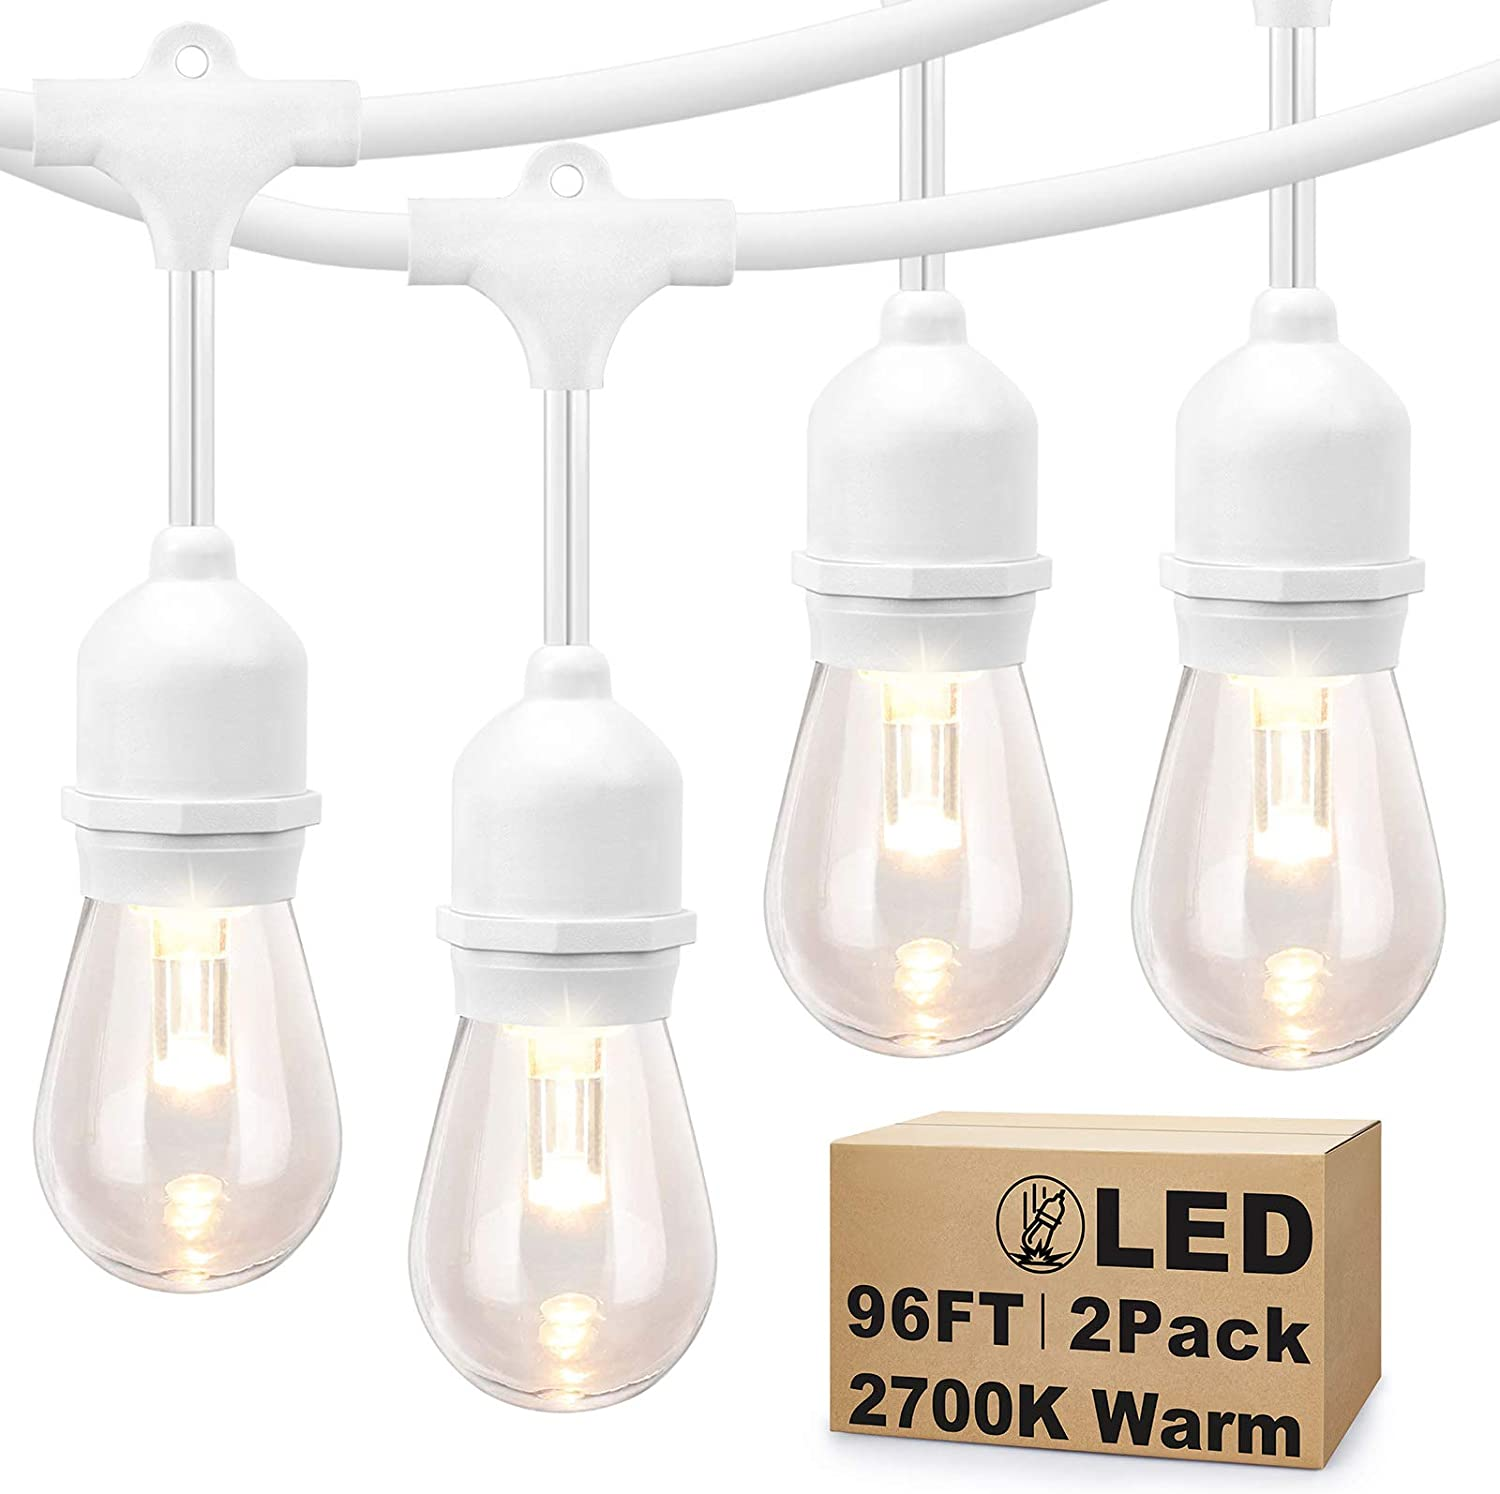 2 Pack 48FT LED Dimmable Outdoor String Lights, Patio String Lights Waterproof, Commercial Grade&Shatterproof, 2700K, White Cords, 15 Hanging Sockets, 3 Spare Bulbs, for Backyard, Gazebo (Total 96FT)